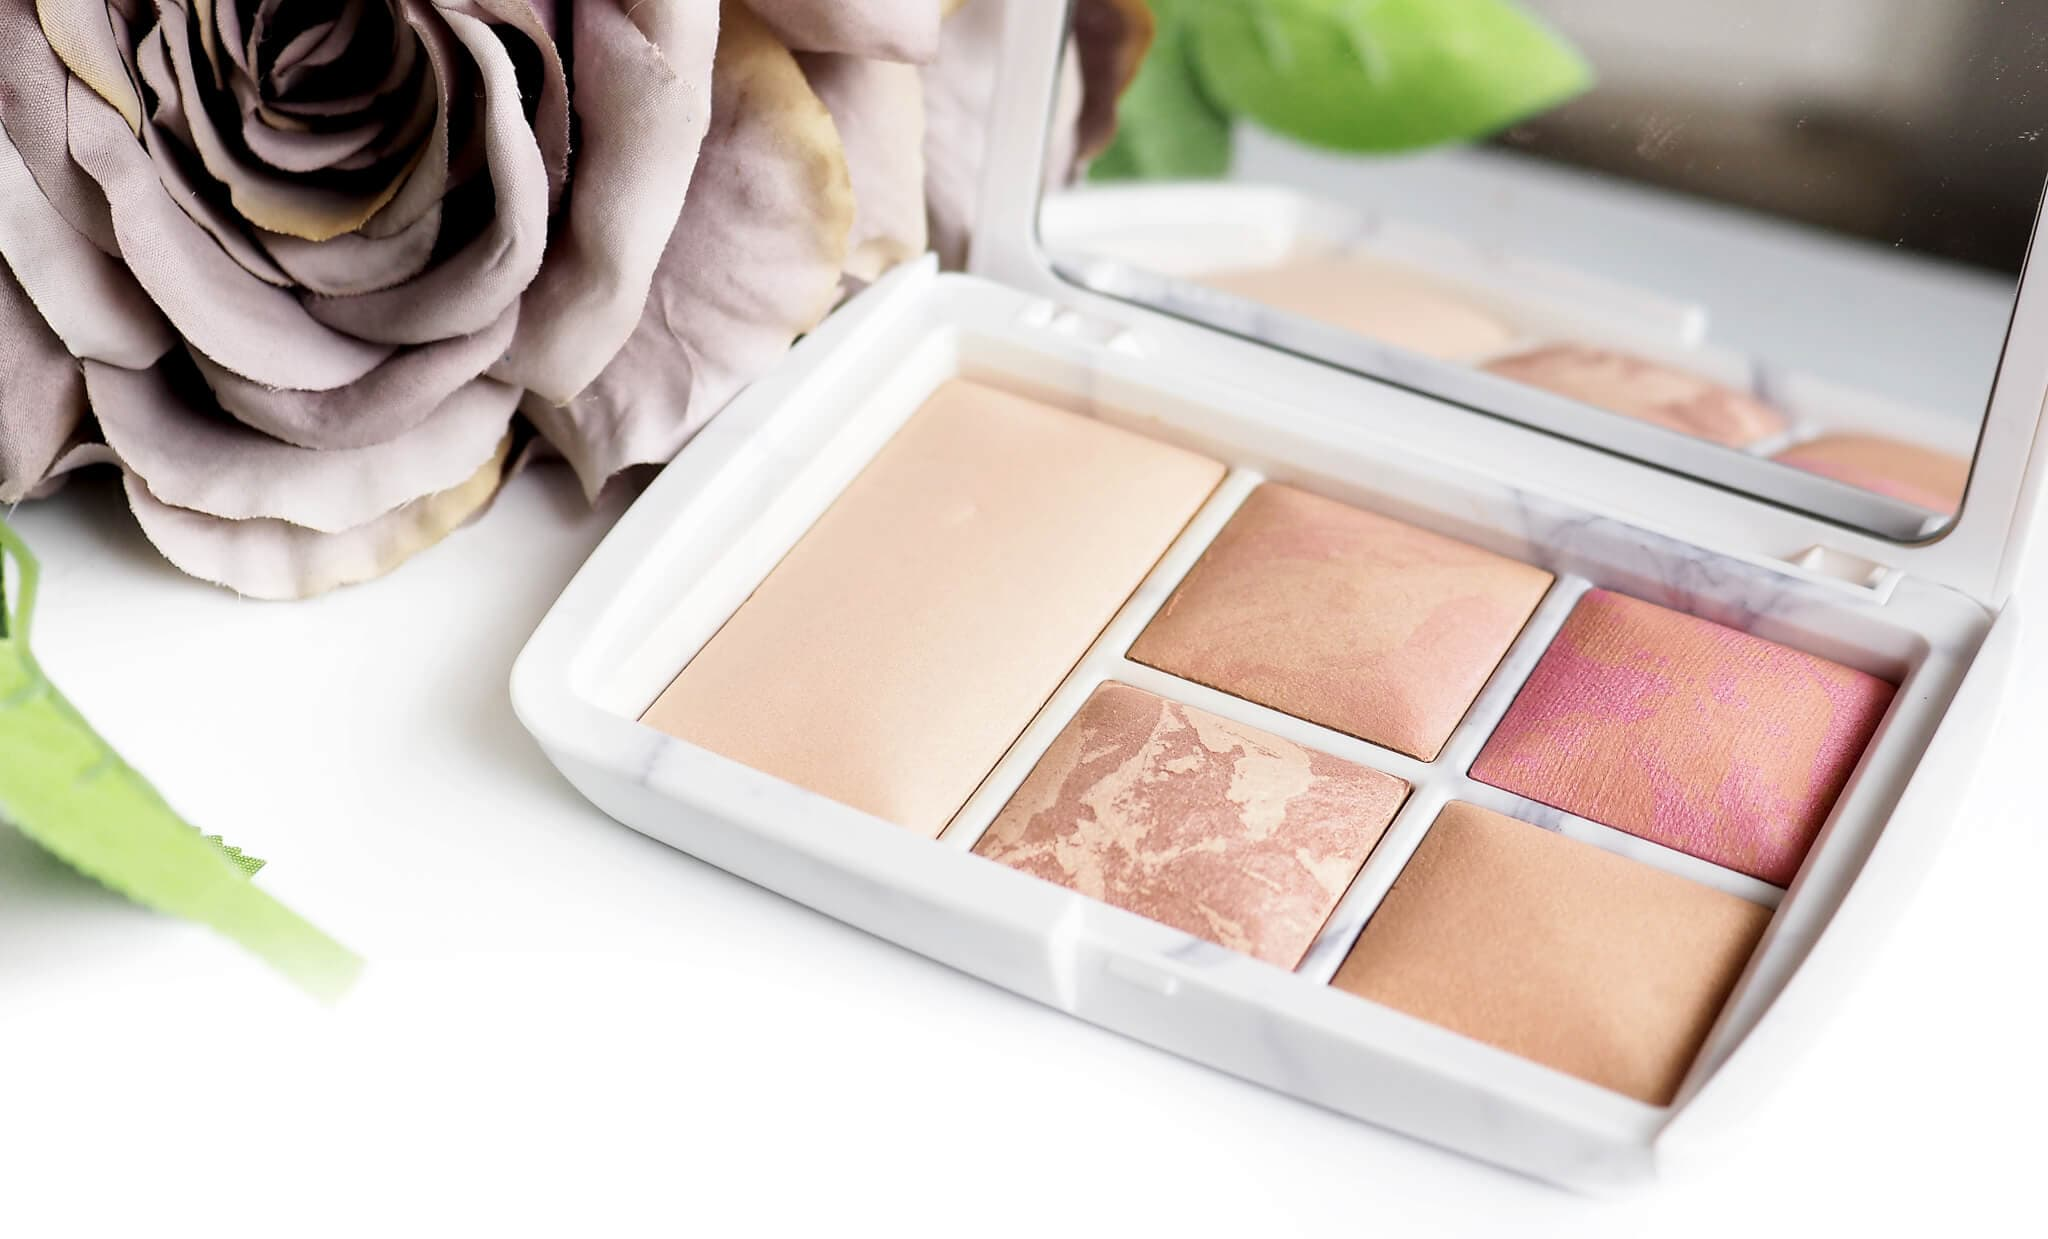 Recenzja HOURGLASS SURREAL LIGHT AMBIENT LIGHTING EDIT